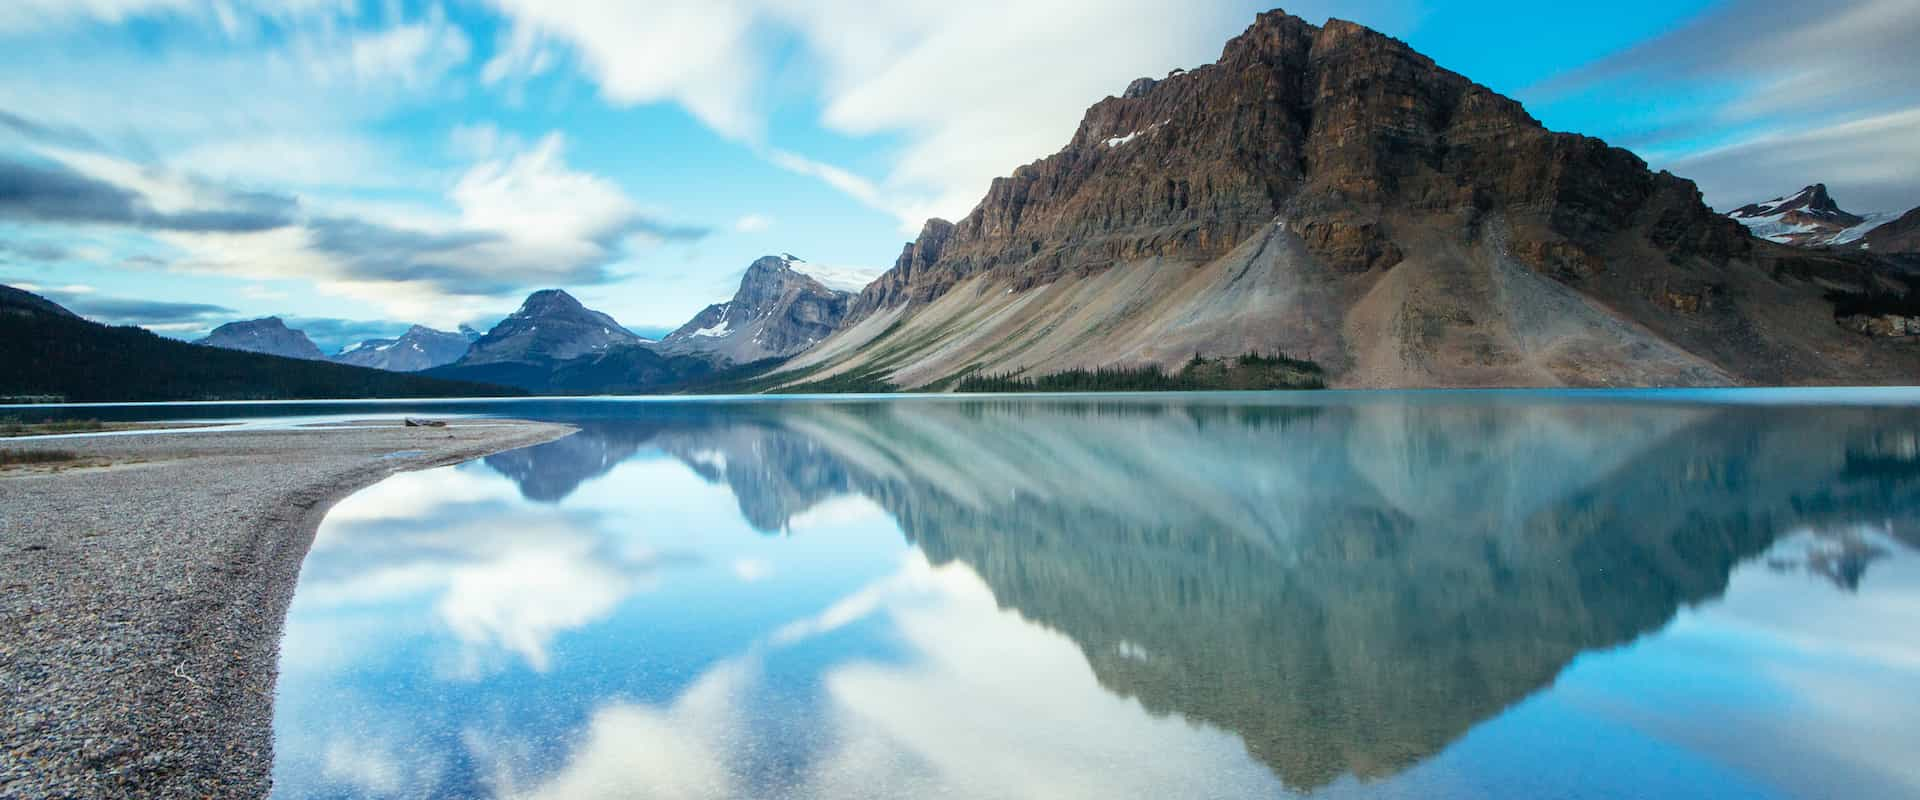 See Bow Lake on the Columbia Icefields Parkway Tour with Discover Banff Tours in the Canadian Rockies